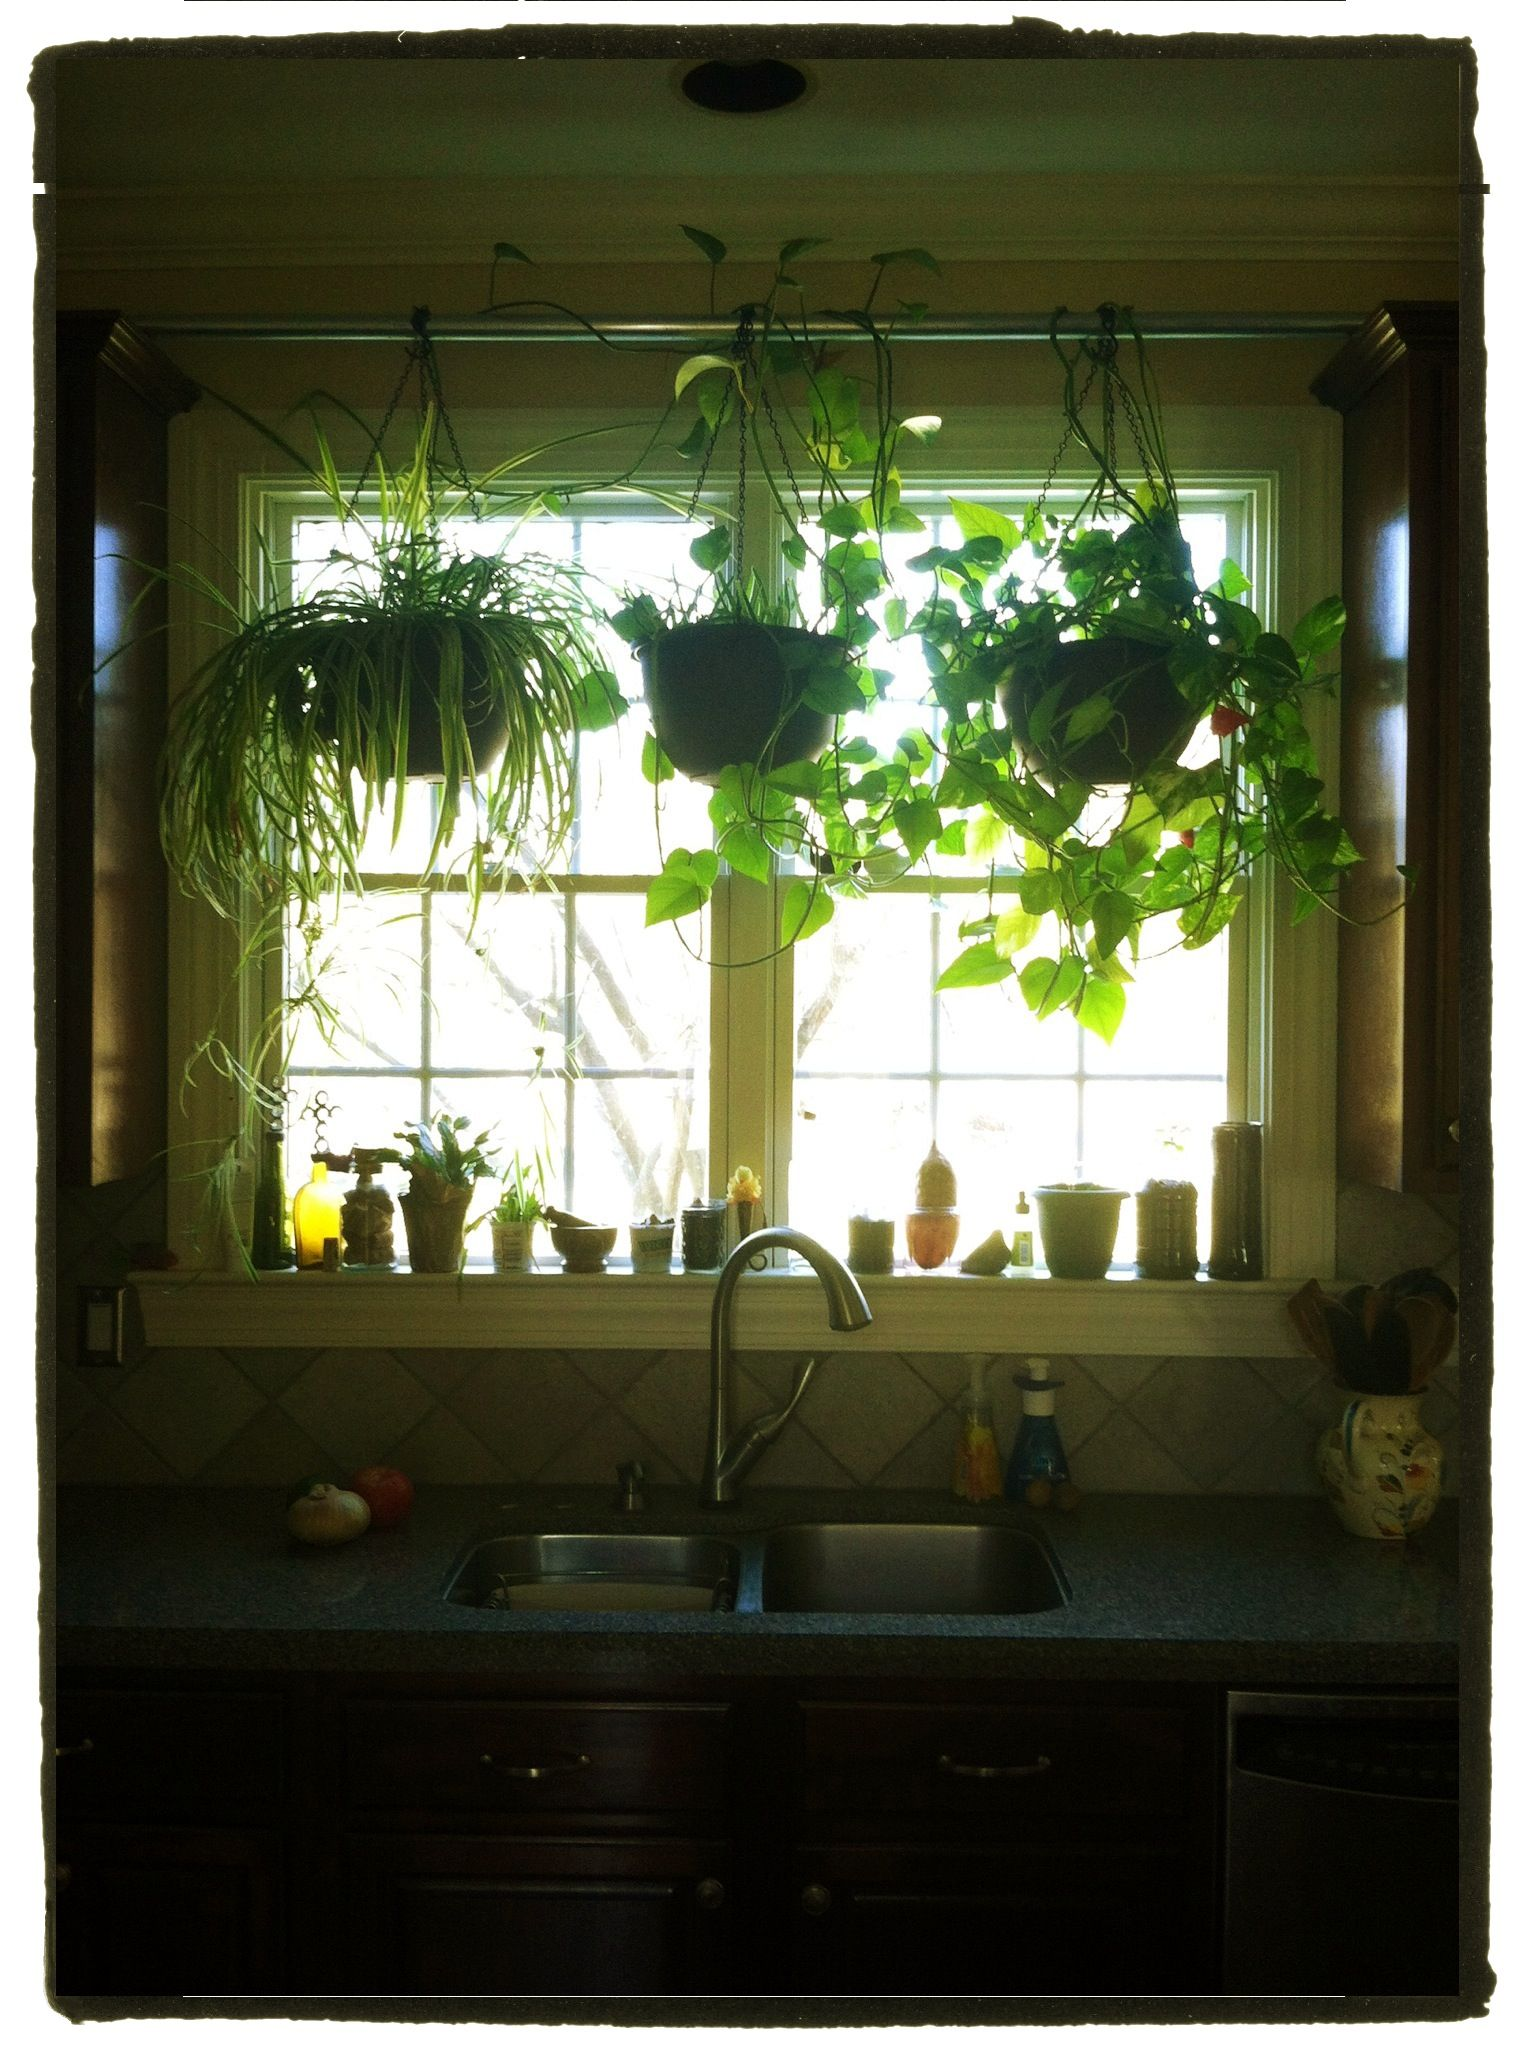 Hang Plants In Your Kitchen Window Without Putting Any Holes In Drywall 1 Place Wood Blocks 2x4s On Top O Kitchen Plants Window Plants Kitchen Window Decor